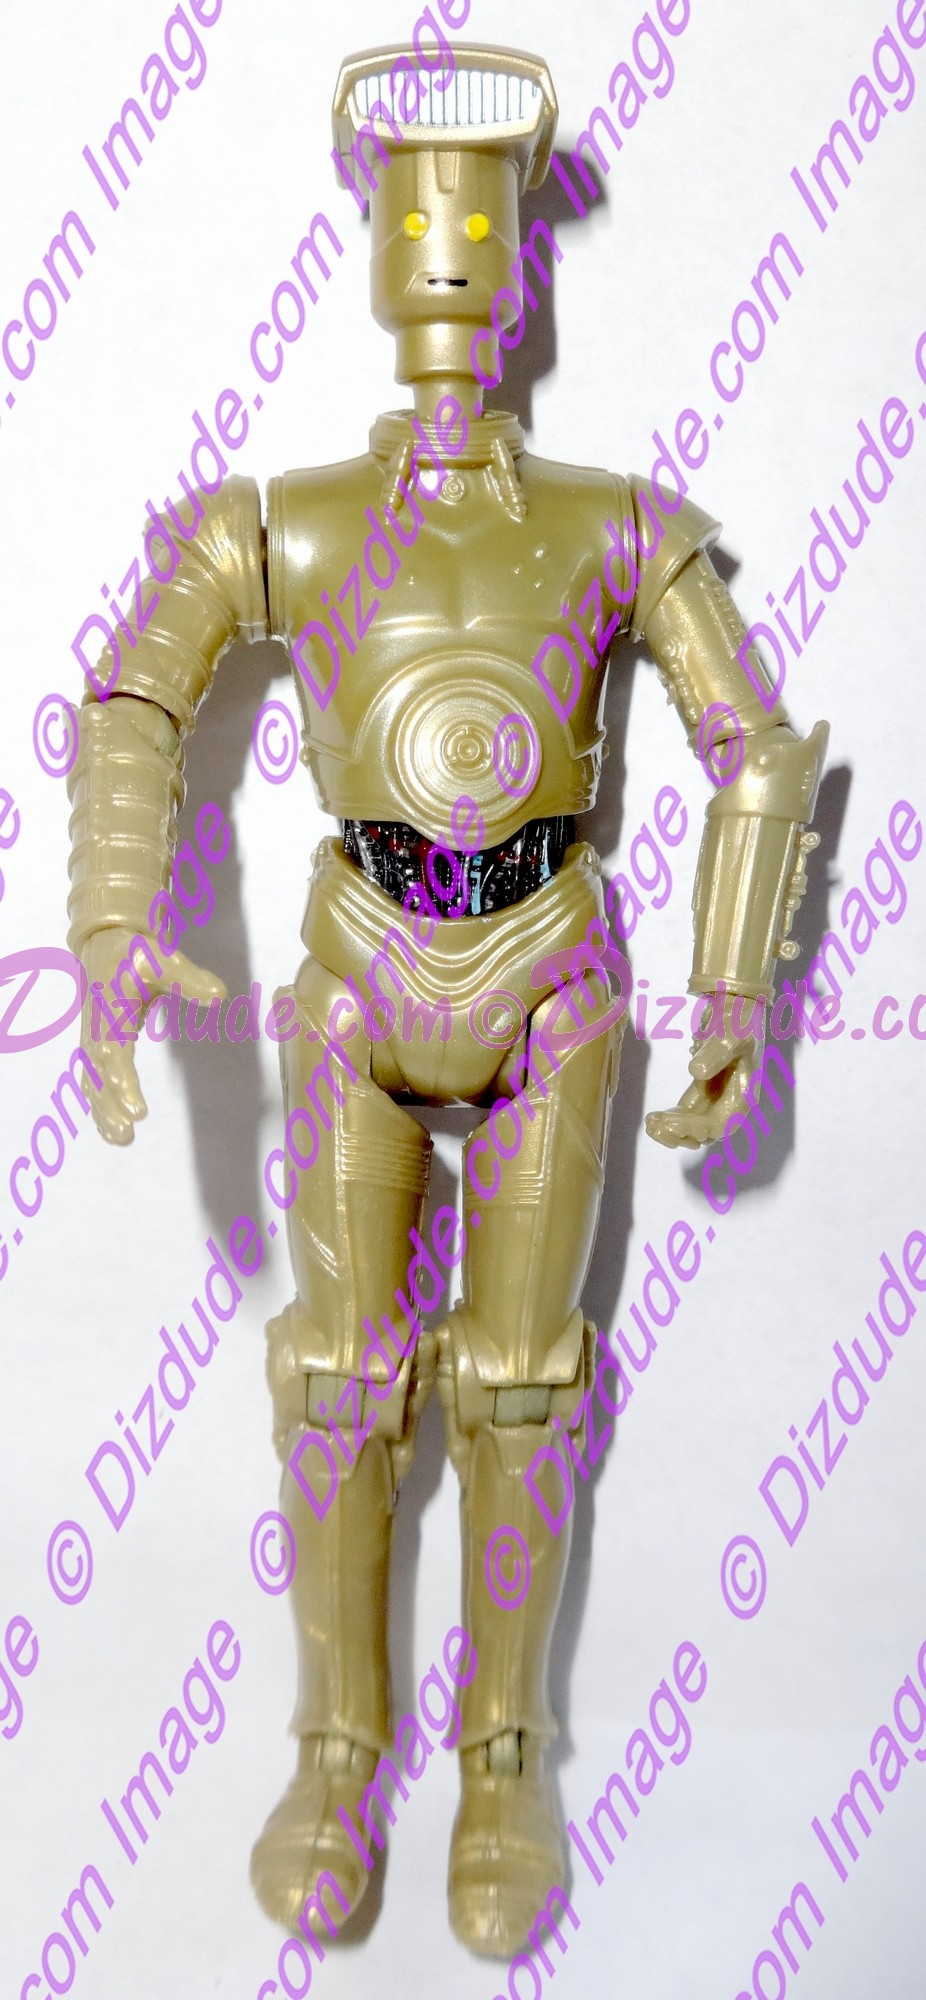 Gold Vender Protocol Droid from Disney Star Wars Build-A-Droid Factory © Dizdude.com